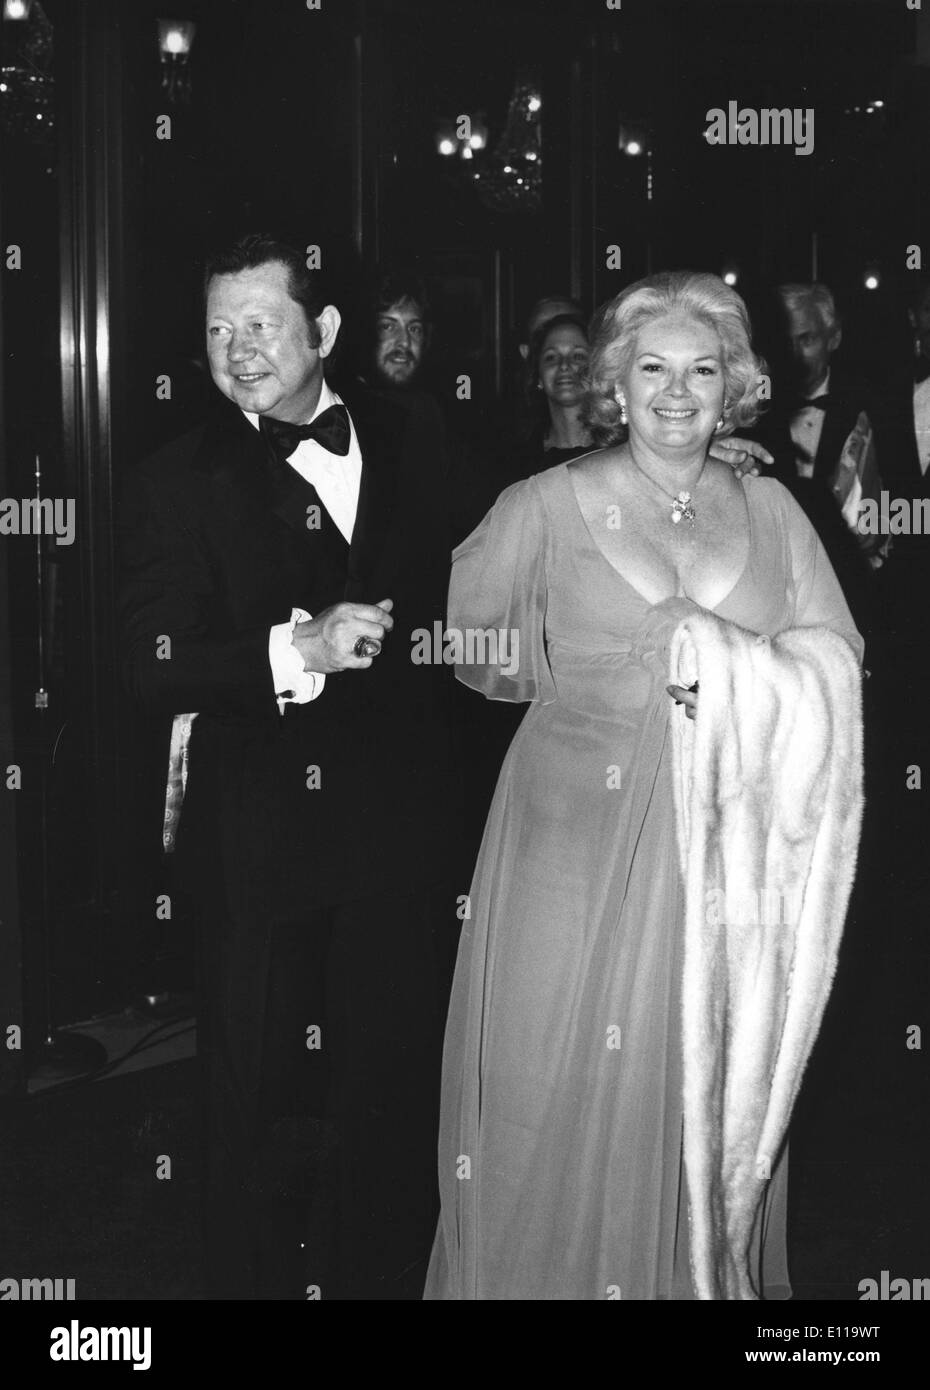 Dancer Donald O'Connor at premiere with wife Gloria - Stock Image